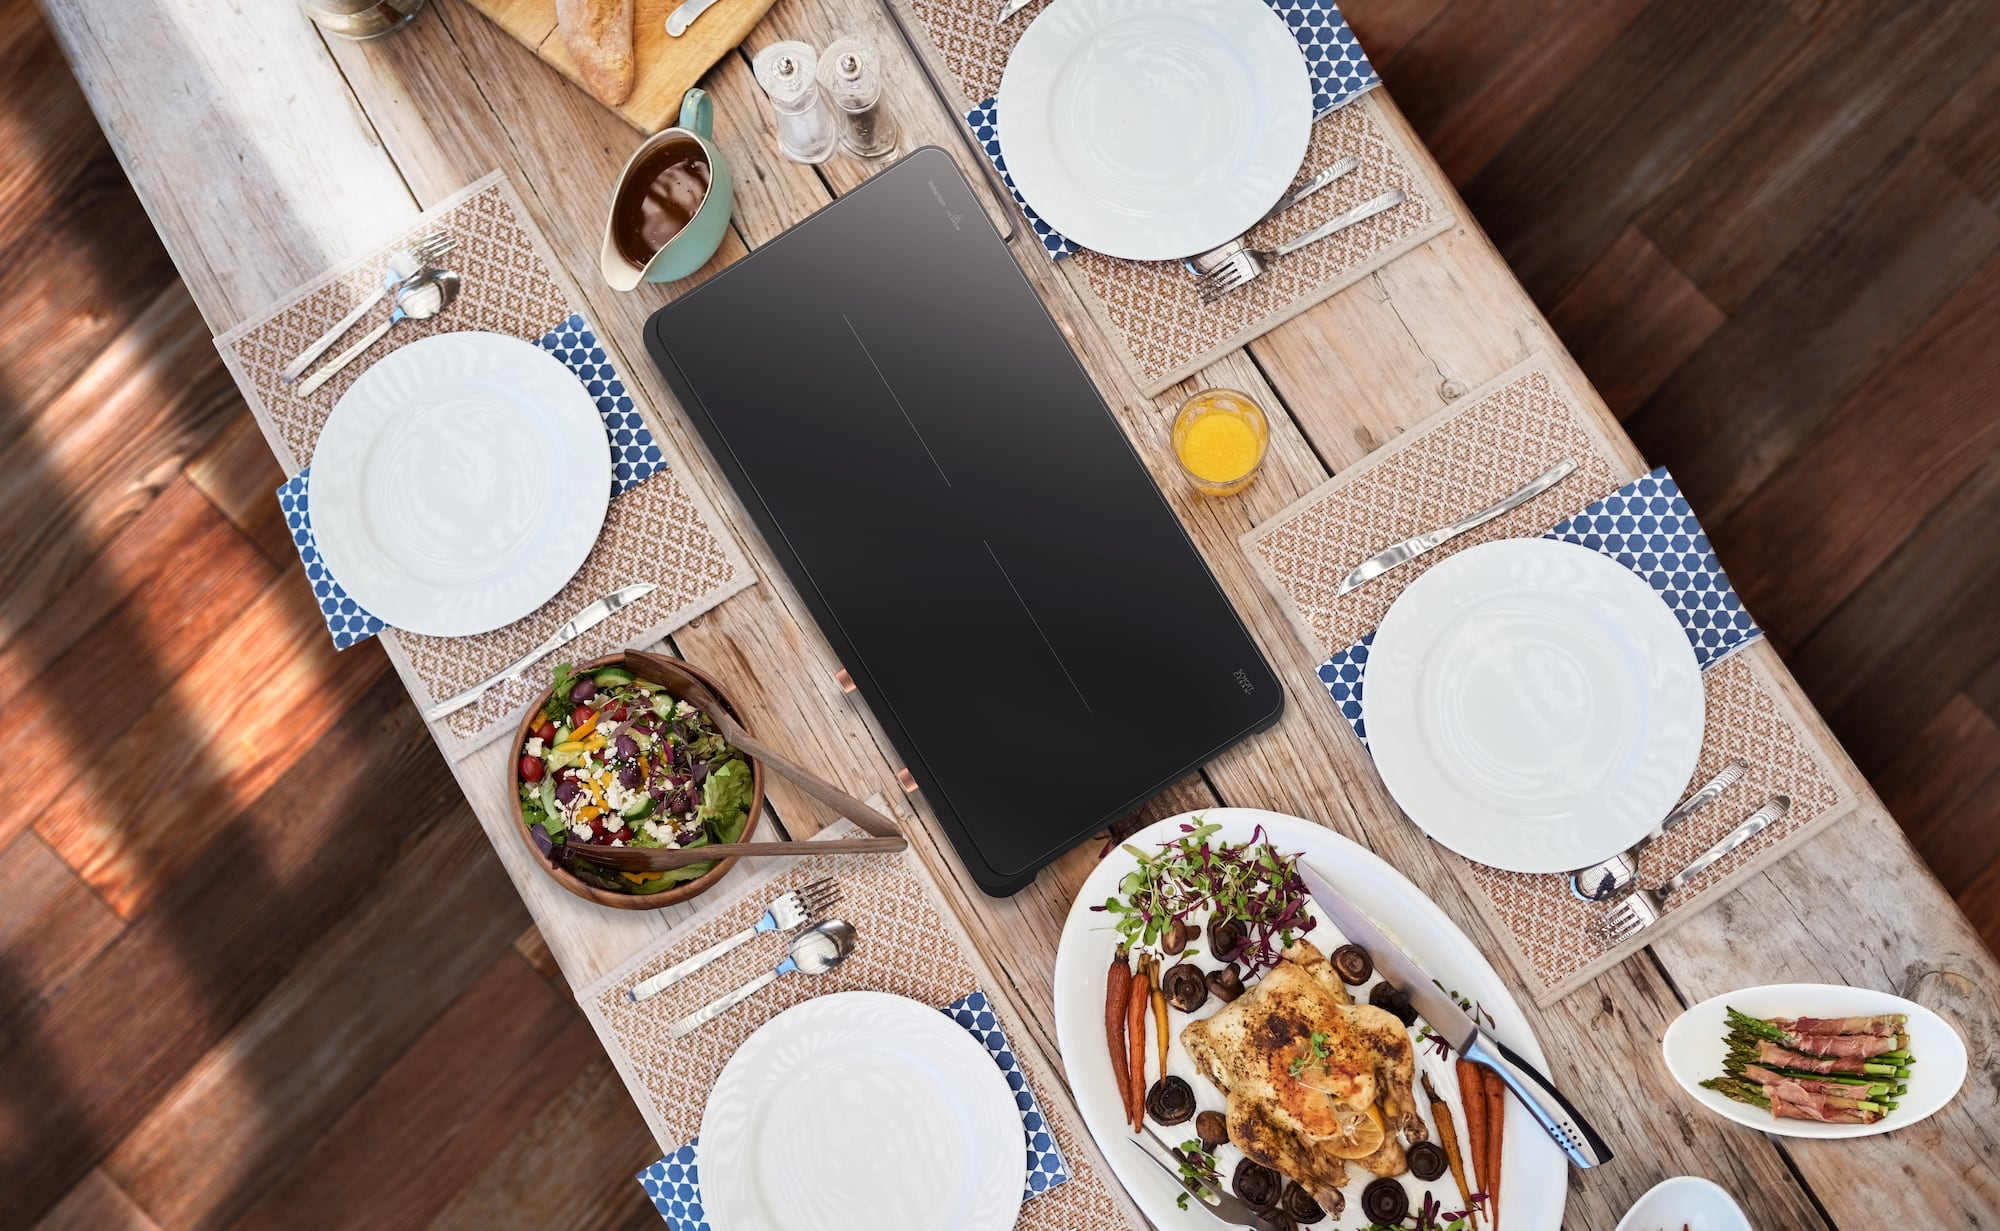 Samsung Portable Slim Double Induction 2-Burner Stove expands your kitchen space